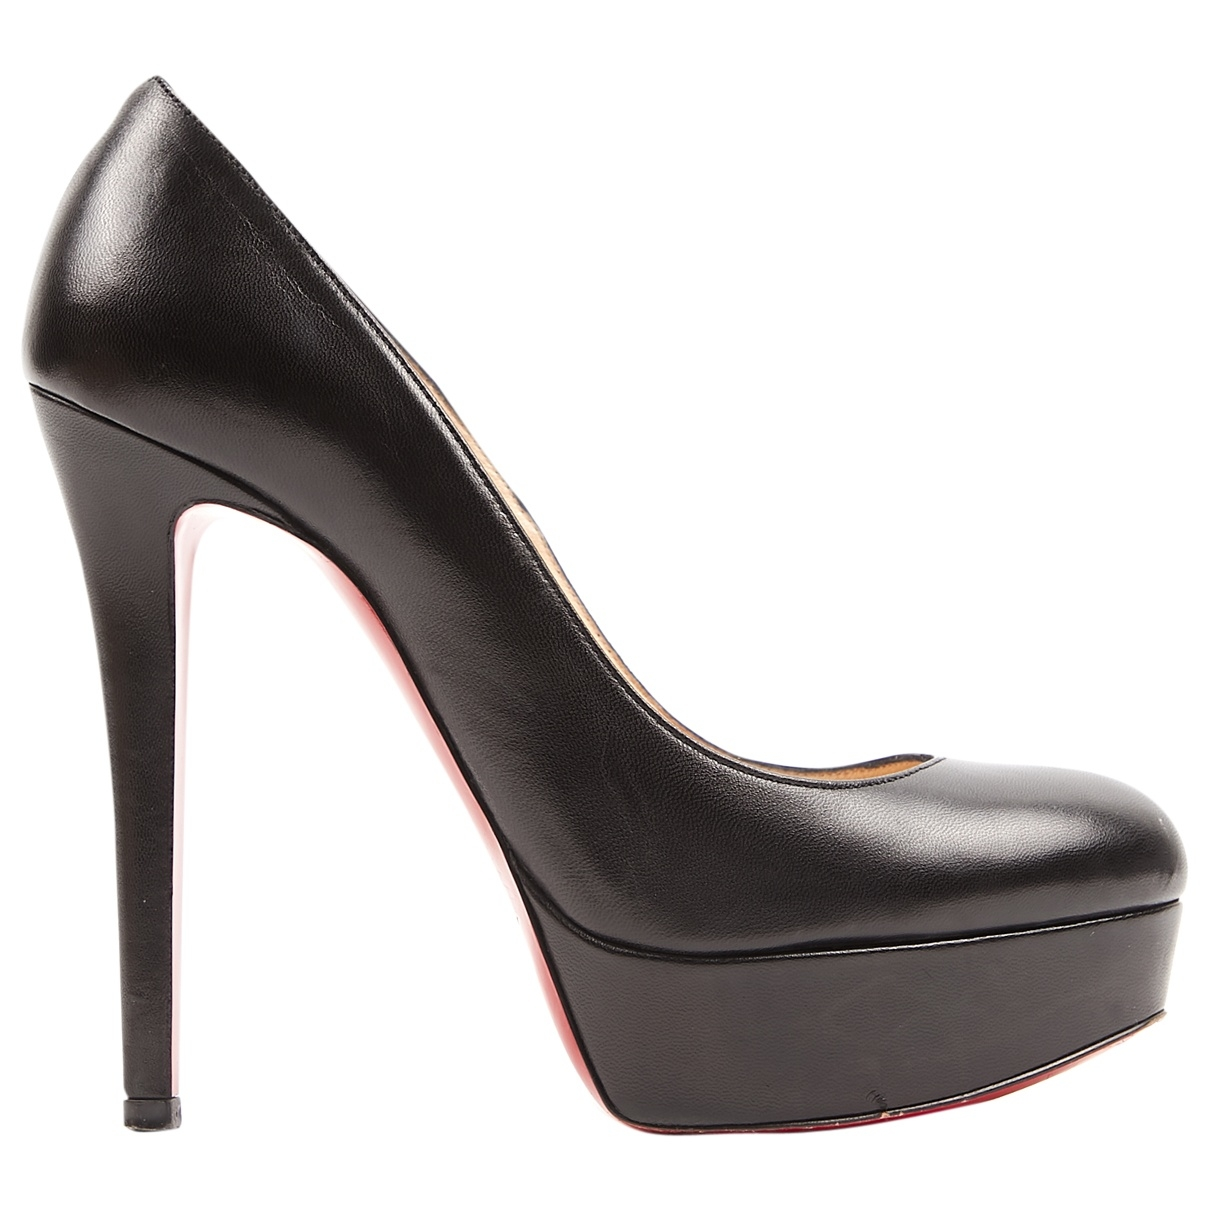 Christian Louboutin Bianca Black Leather Heels for Women 36.5 EU